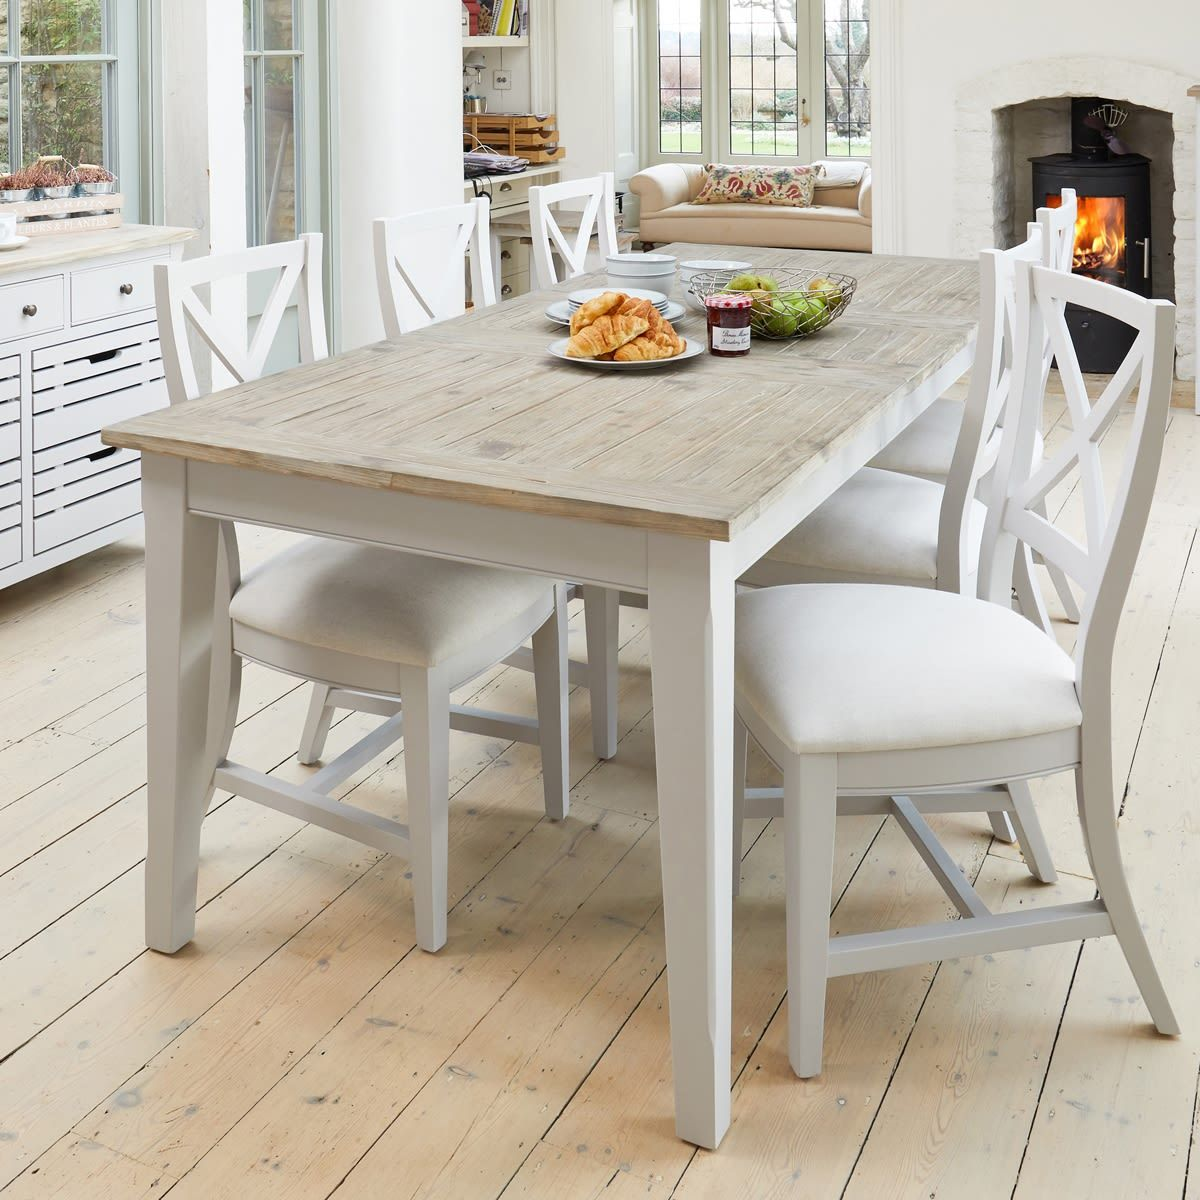 Signature Grey Extending Dining Table With Six Chairs In 2020 Dining Table Extendable Dining Table Informal Dining Rooms